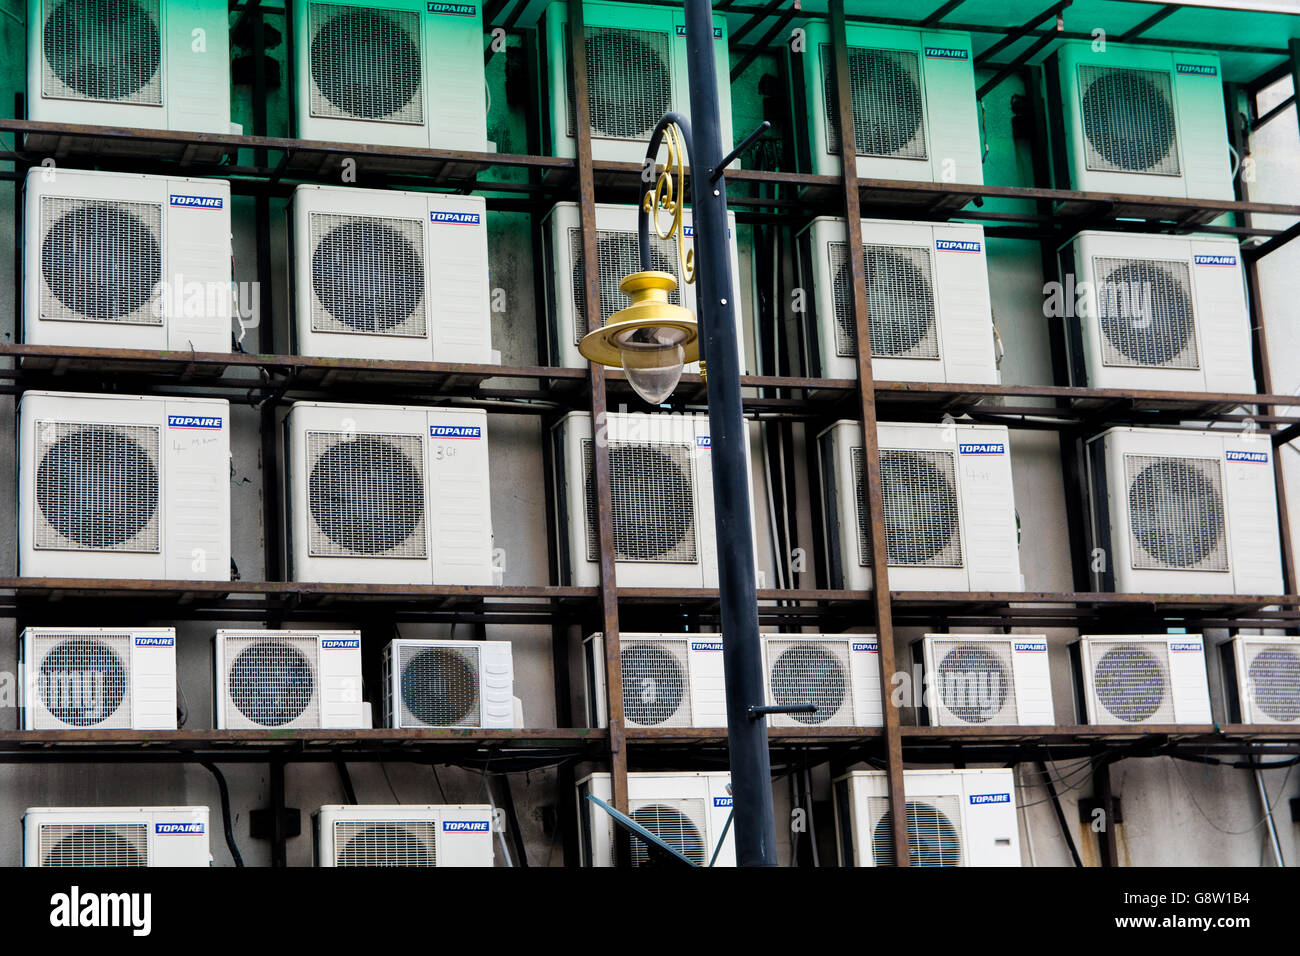 Group of Air Conditioner External Fans - Stock Image